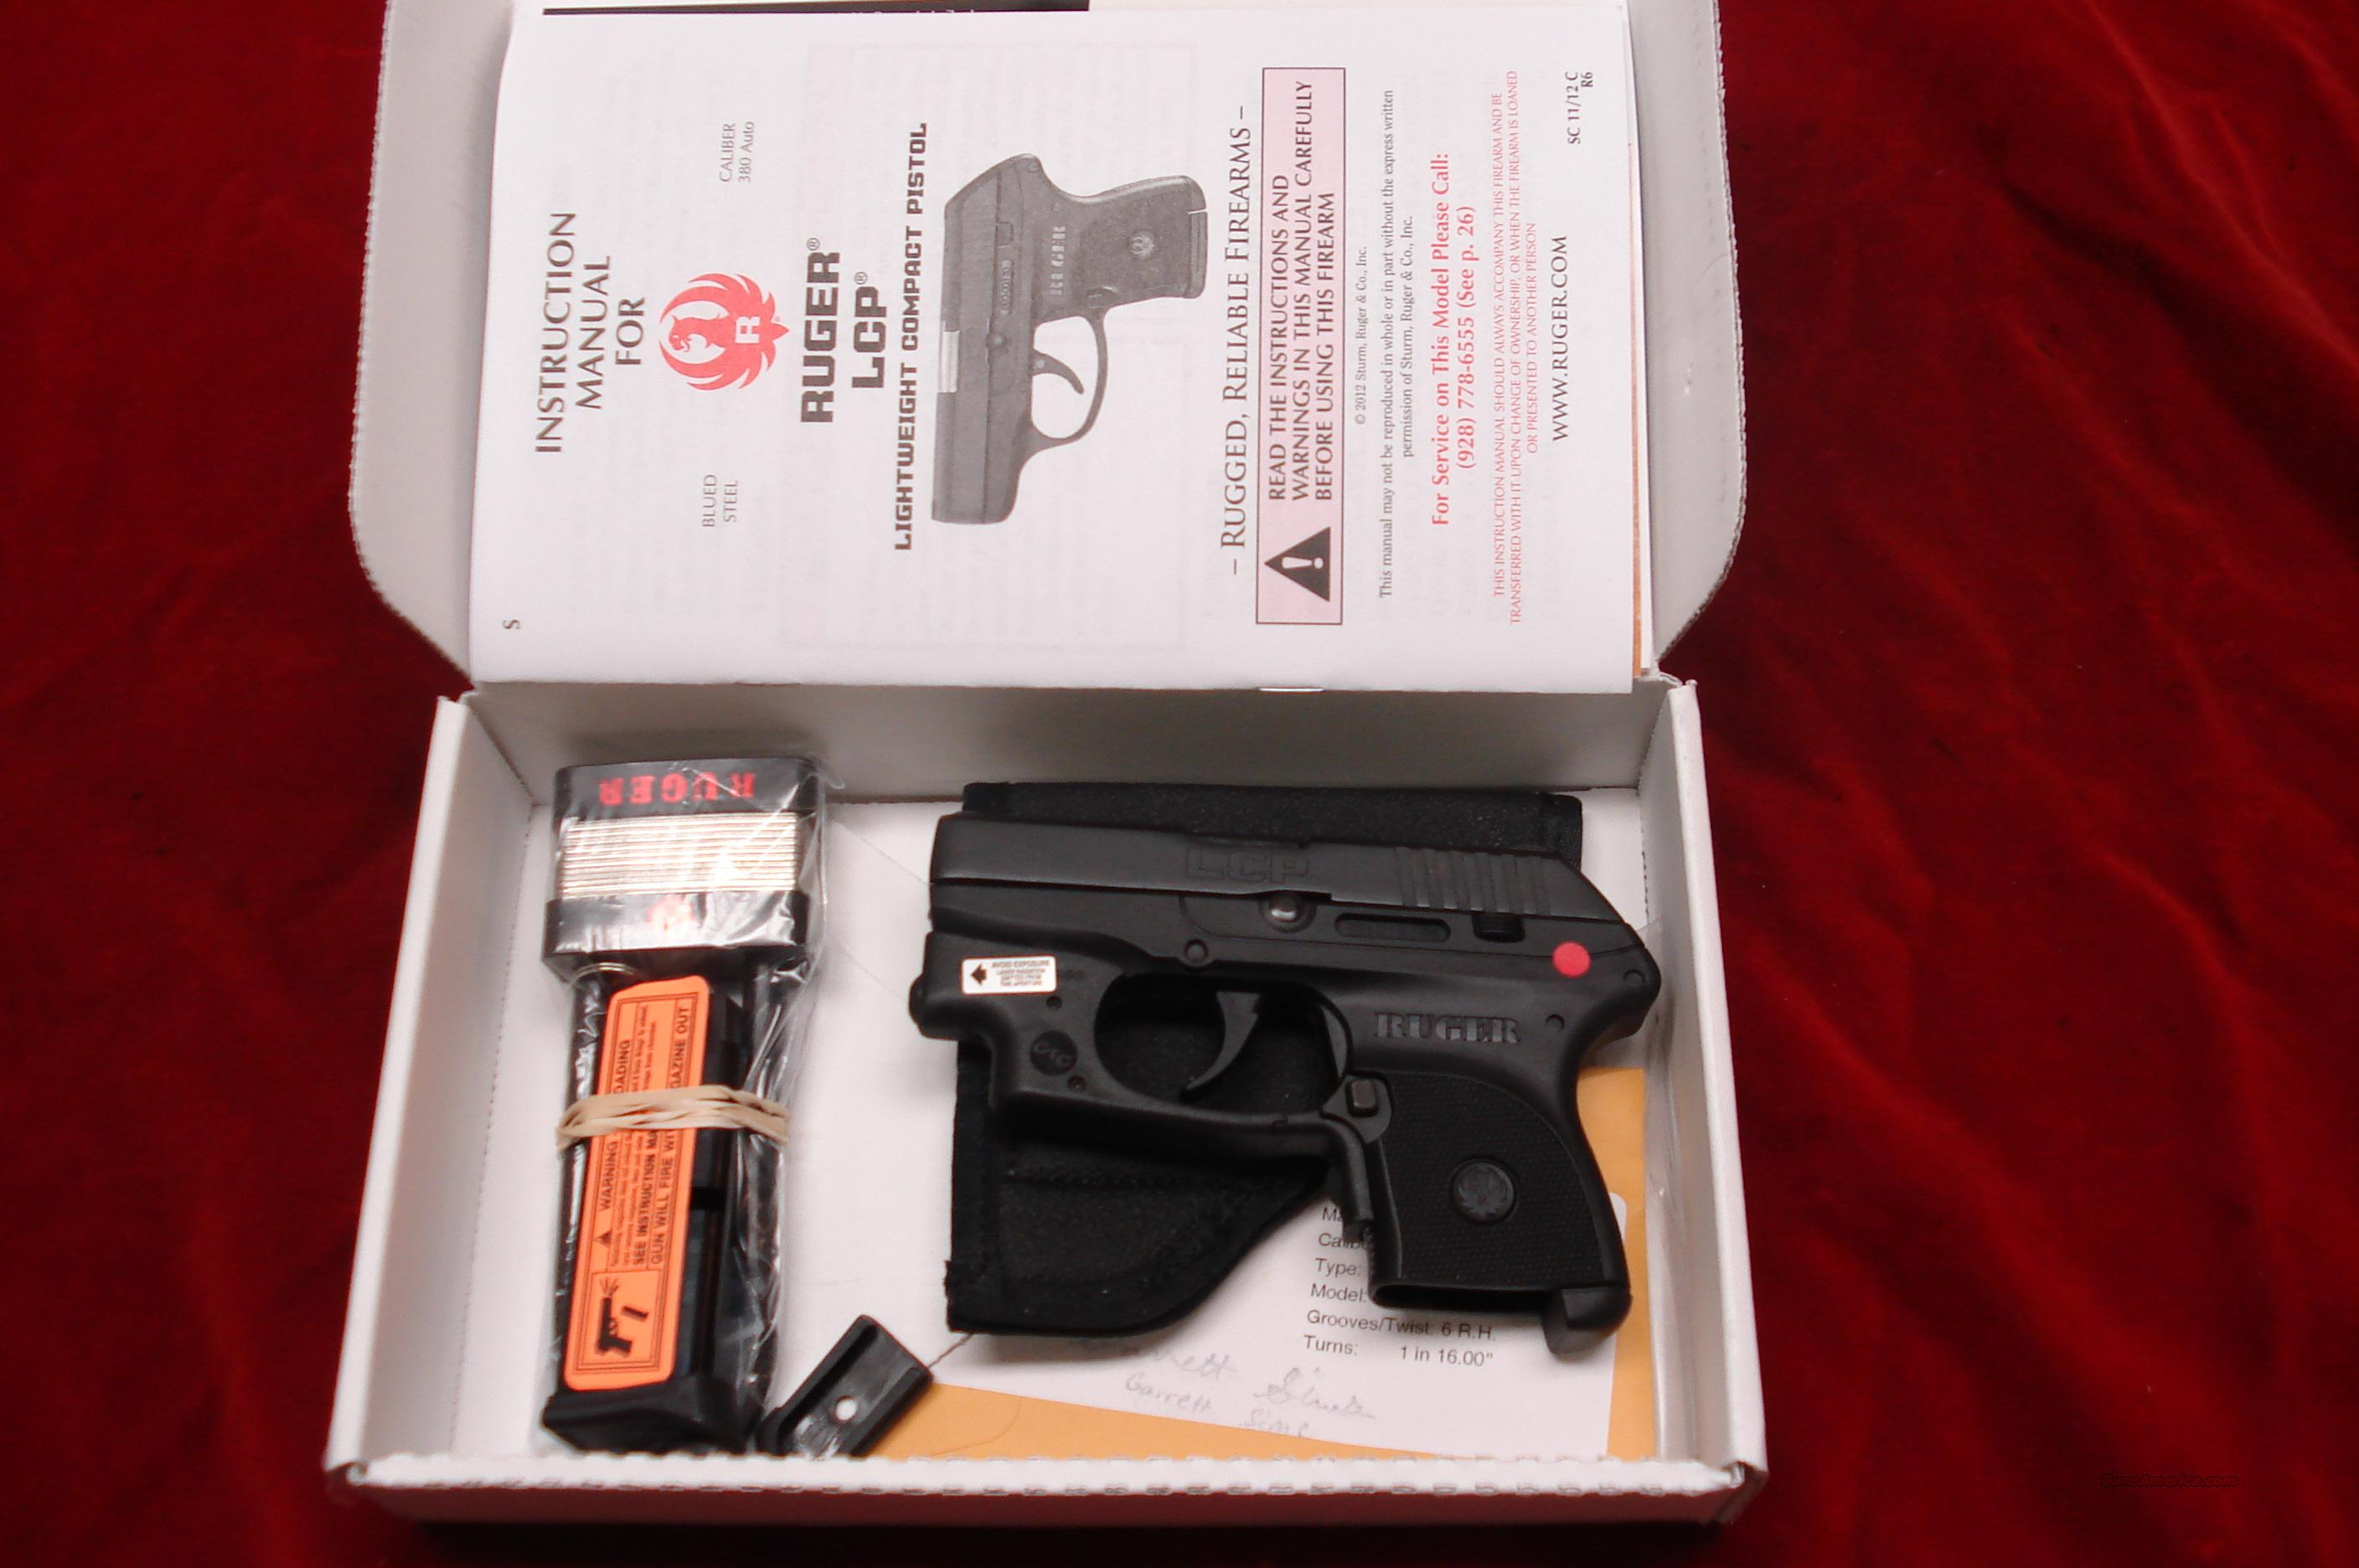 RUGER LCP (Lightweight Compact Pistol) 380CAL. WITH FACTORY INSTALLED CRIMSON TRACE LASER NEW  Guns > Pistols > Ruger Semi-Auto Pistols > LCP